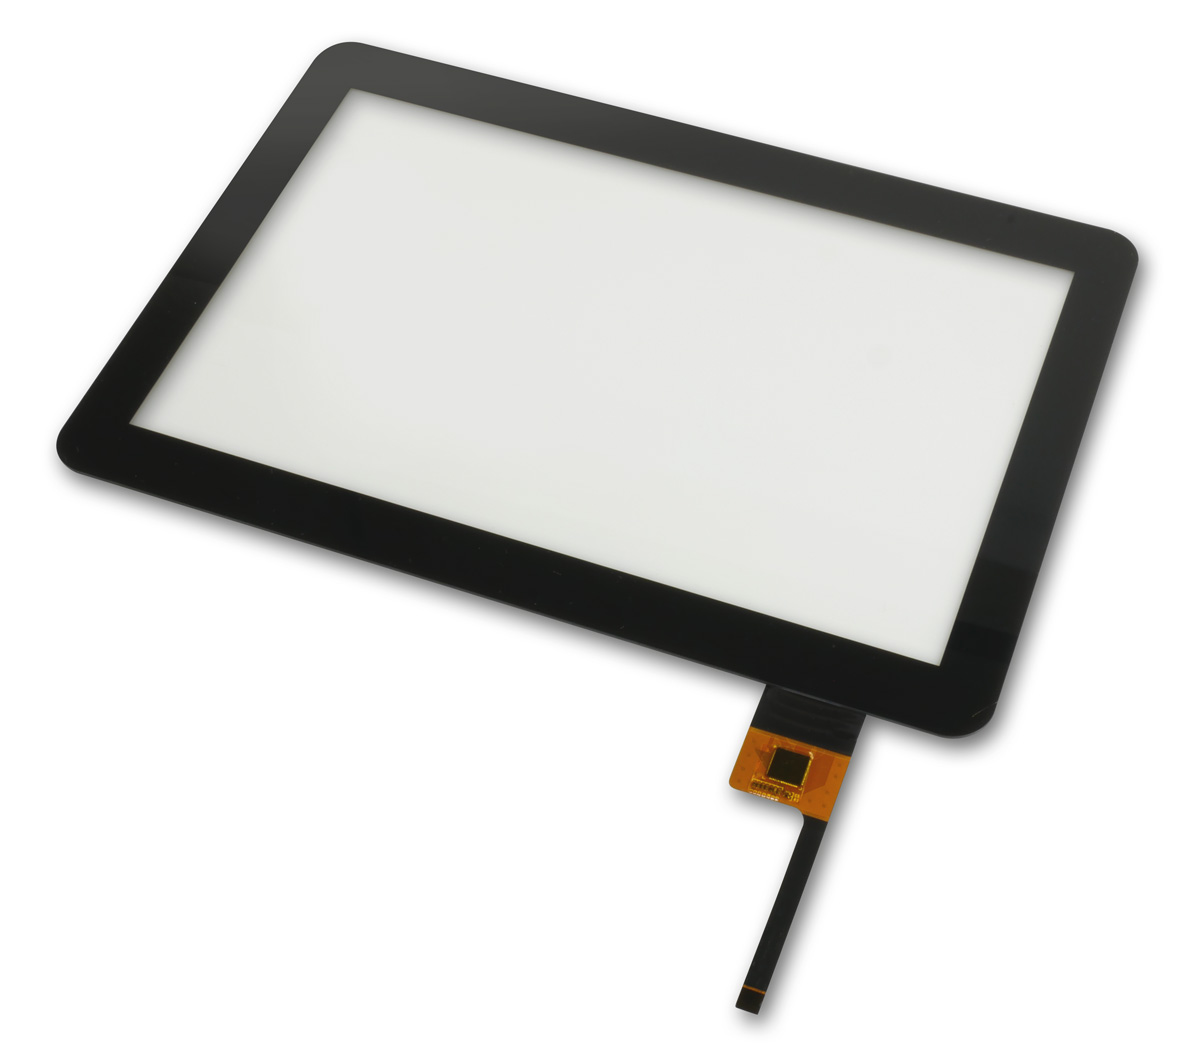 ixes smarttouch Touchscreen Groß